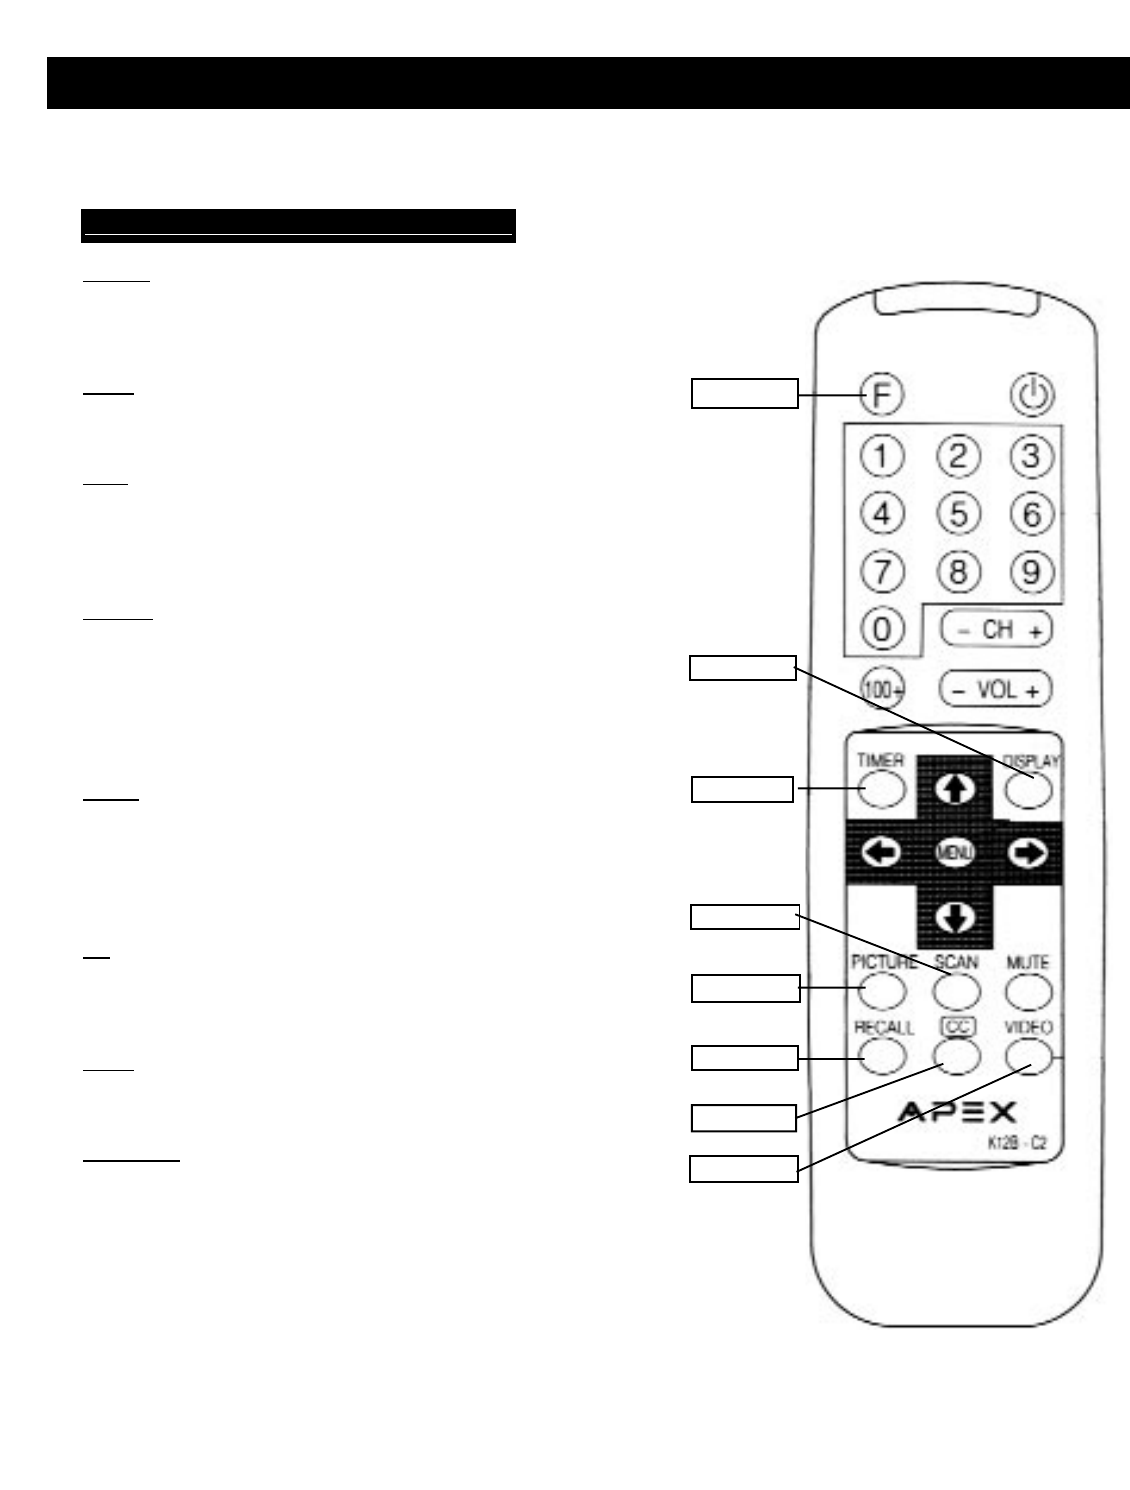 Page 21 of Apex Digital Flat Panel Television AT2002 User